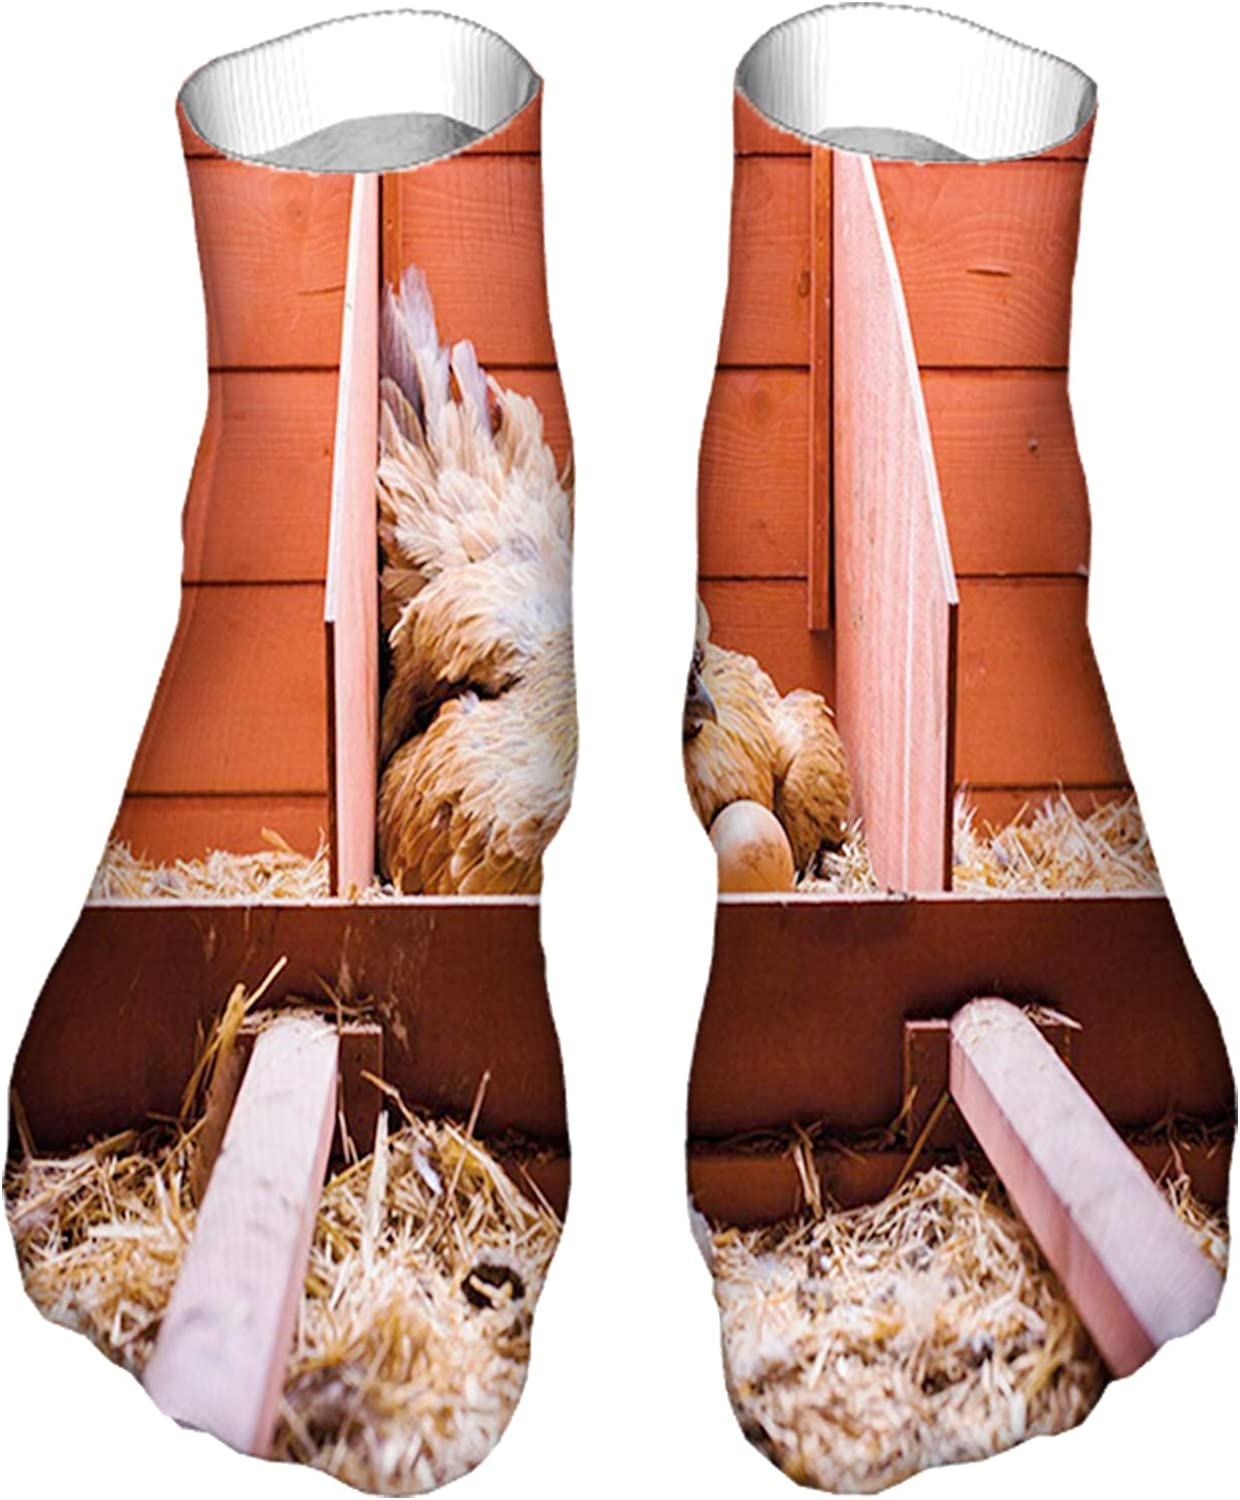 Men's and Women's Fun Socks Printed Cool Novelty Funny Socks,Husbandry Photo with Laying Hen Incubating Inside Cage